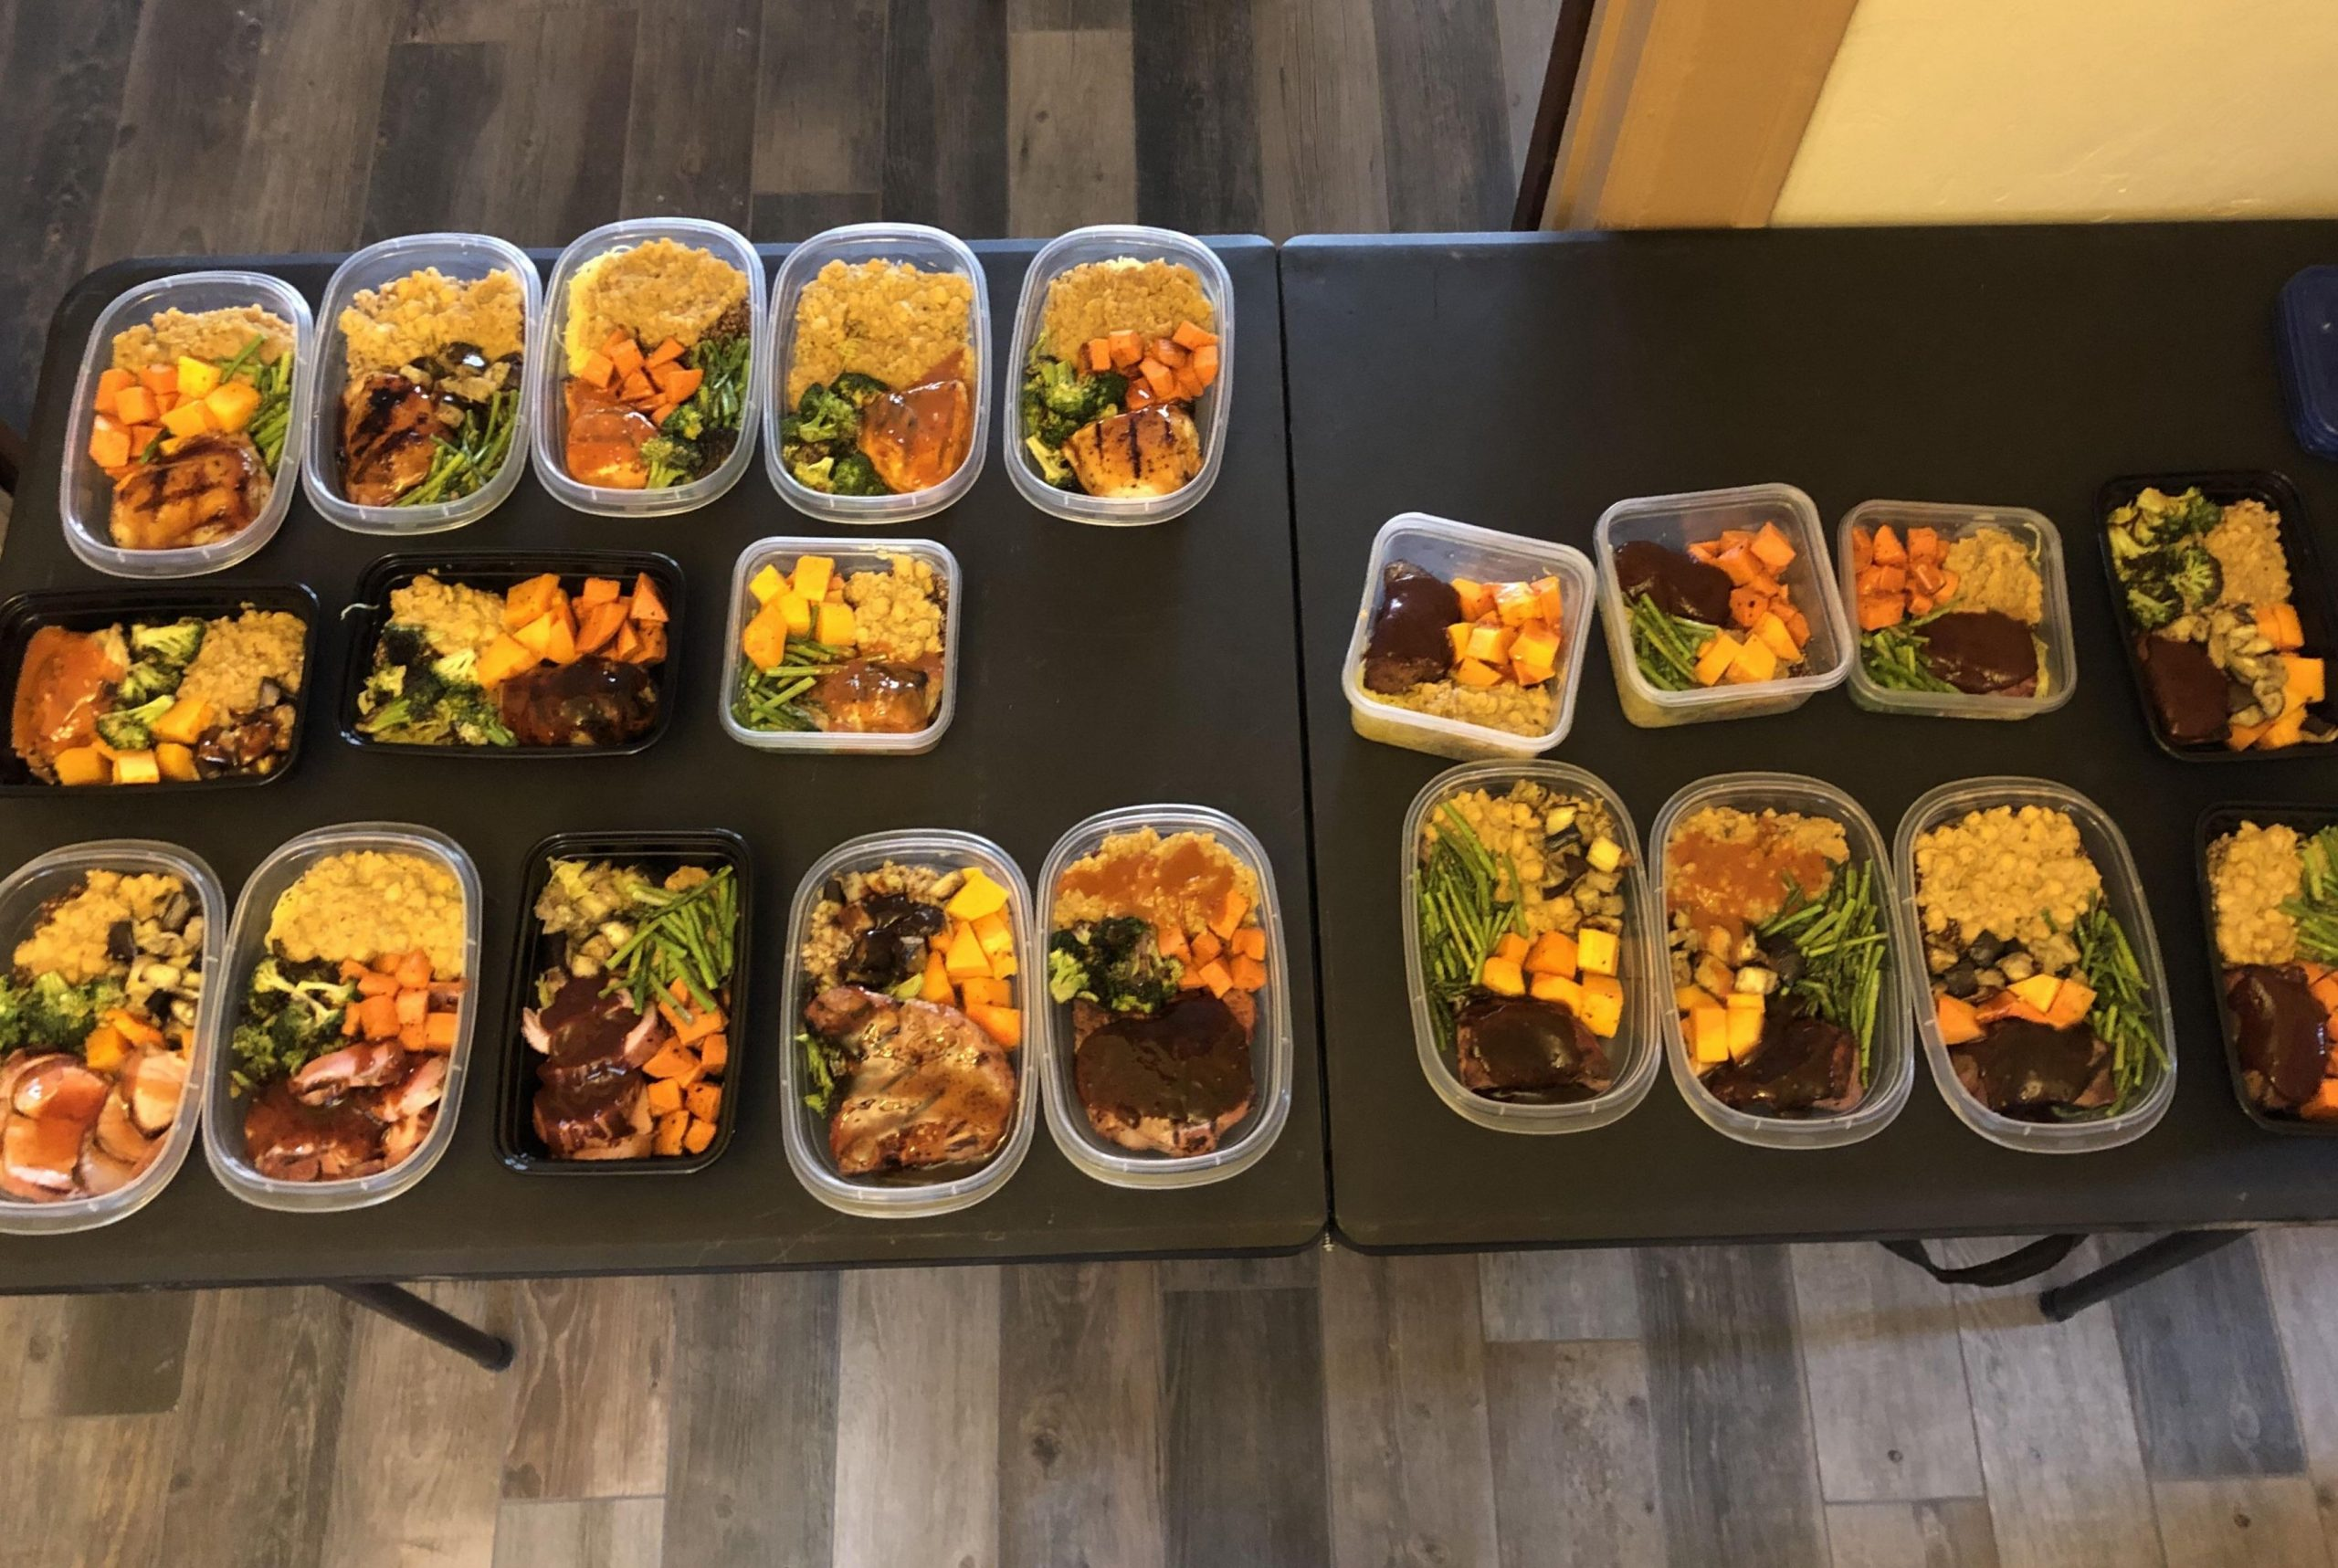 12 delicious, healthy meals for ~$12 each. Around 12 hours prep time ...